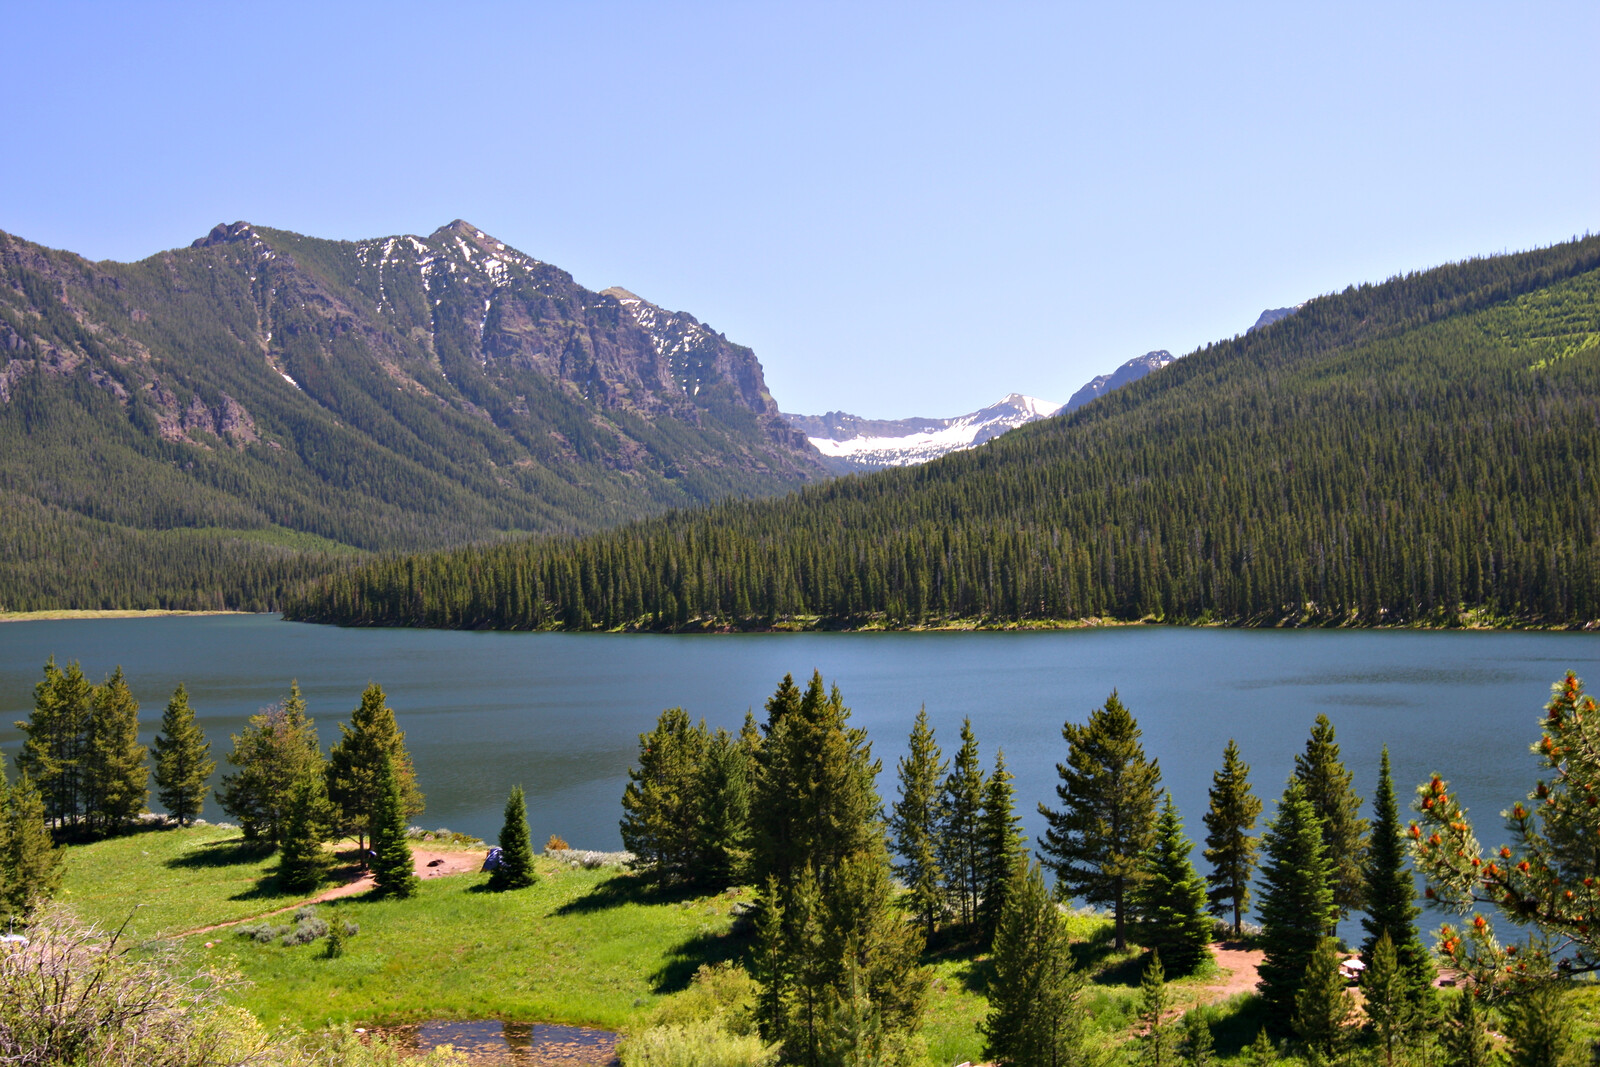 Highlite lake in gallatin national forest, blue skies, mountains in the background, and pines lining the lake in Bozeman, Montana